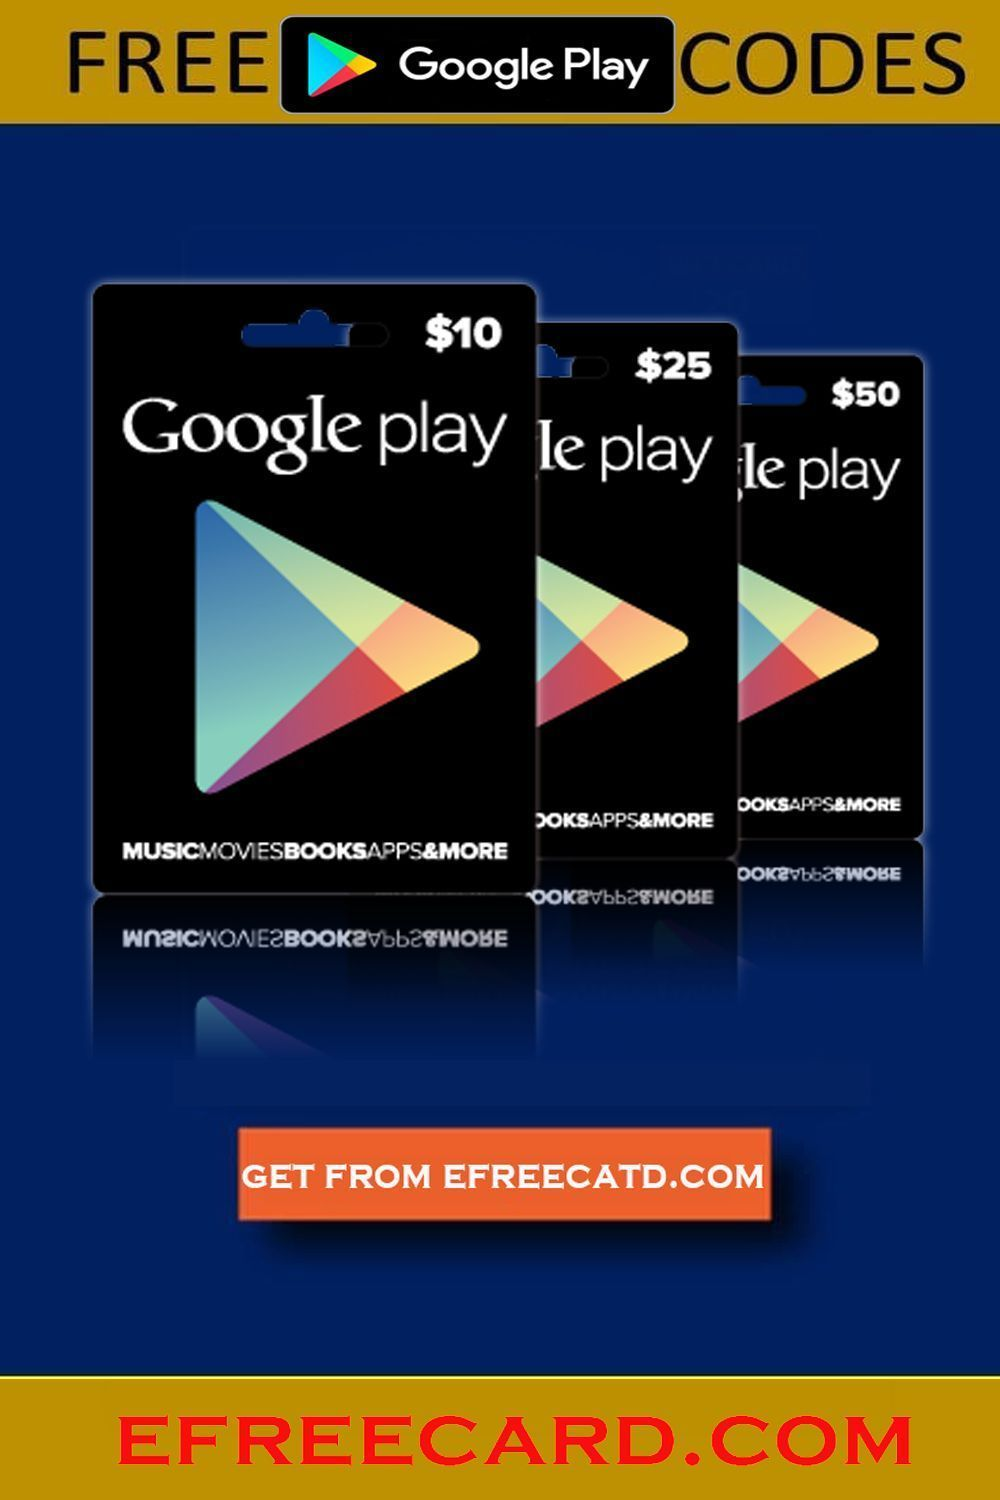 How To Redeem Code For Playstore 2020 How To Redeem Code For Playstore 2020 How To Re Google Play Gift Card Free Gift Cards Free Gift Card Generator